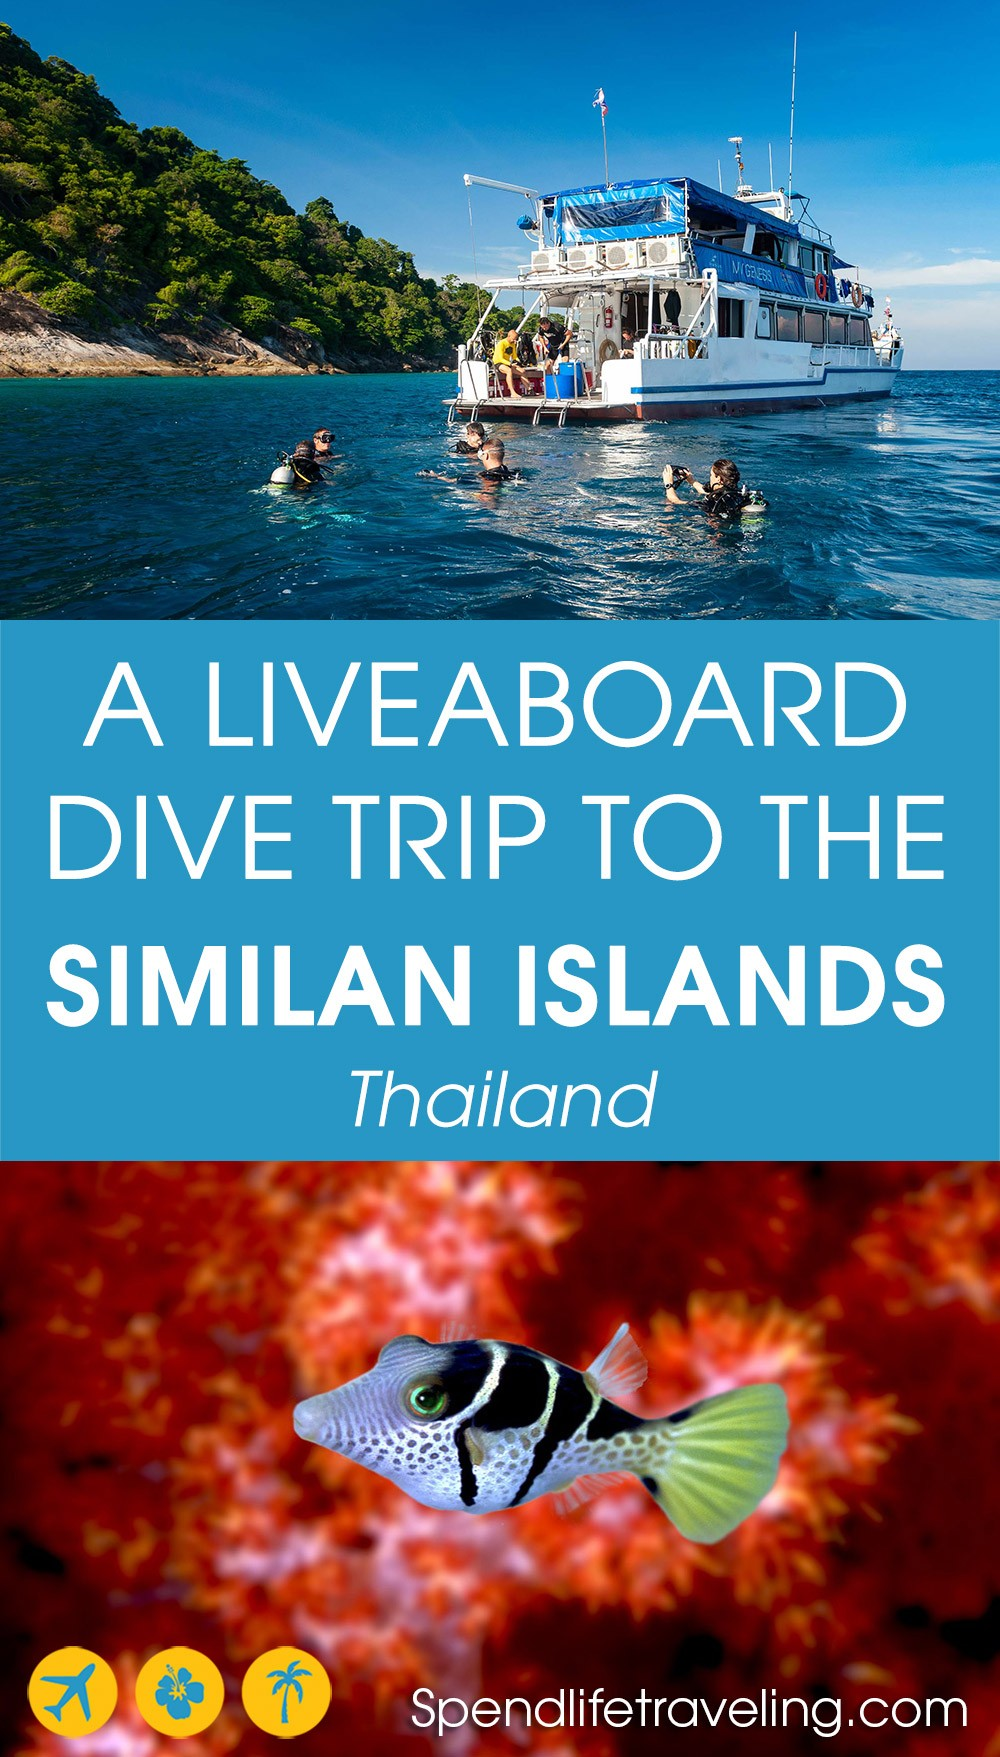 Why should you go on a liveaboard diving trip to the Similan Islands? #scubadiving #similanislands #liveaboard #bestdiving